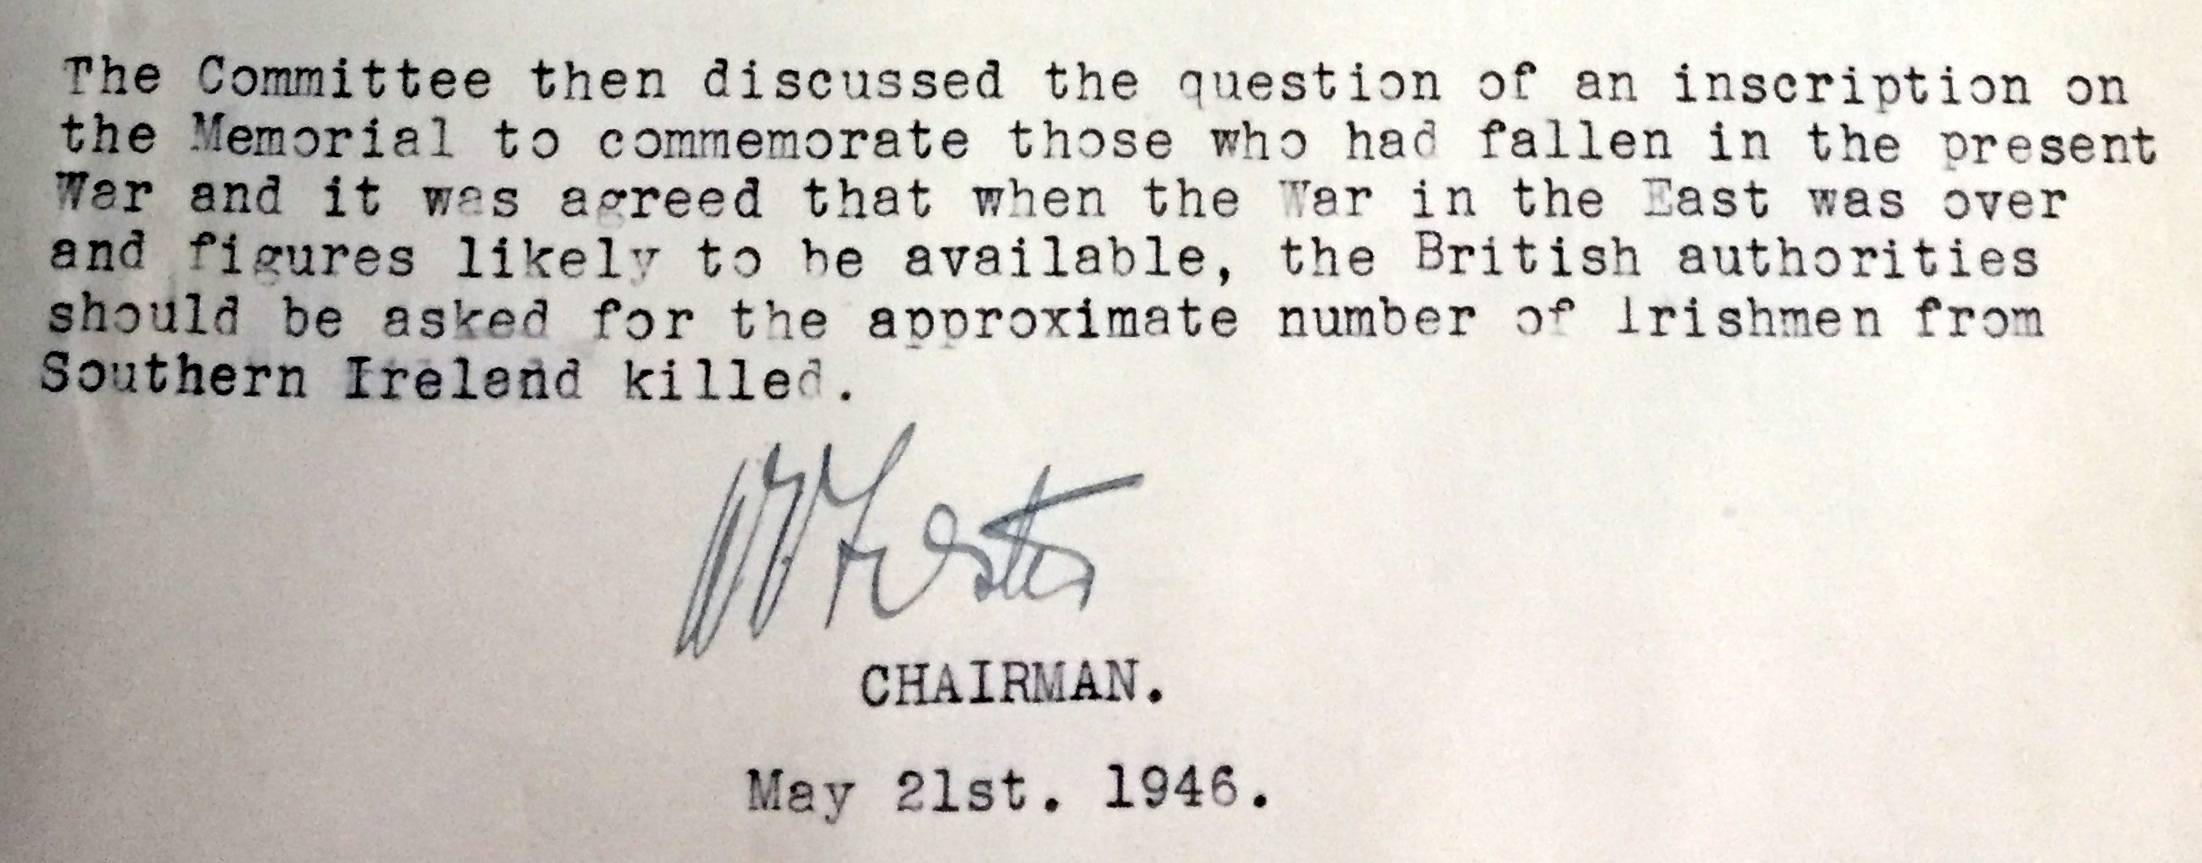 Committee Minutes, 1945. Reproduced with kind permission of the Irish National War Memorial Committee.